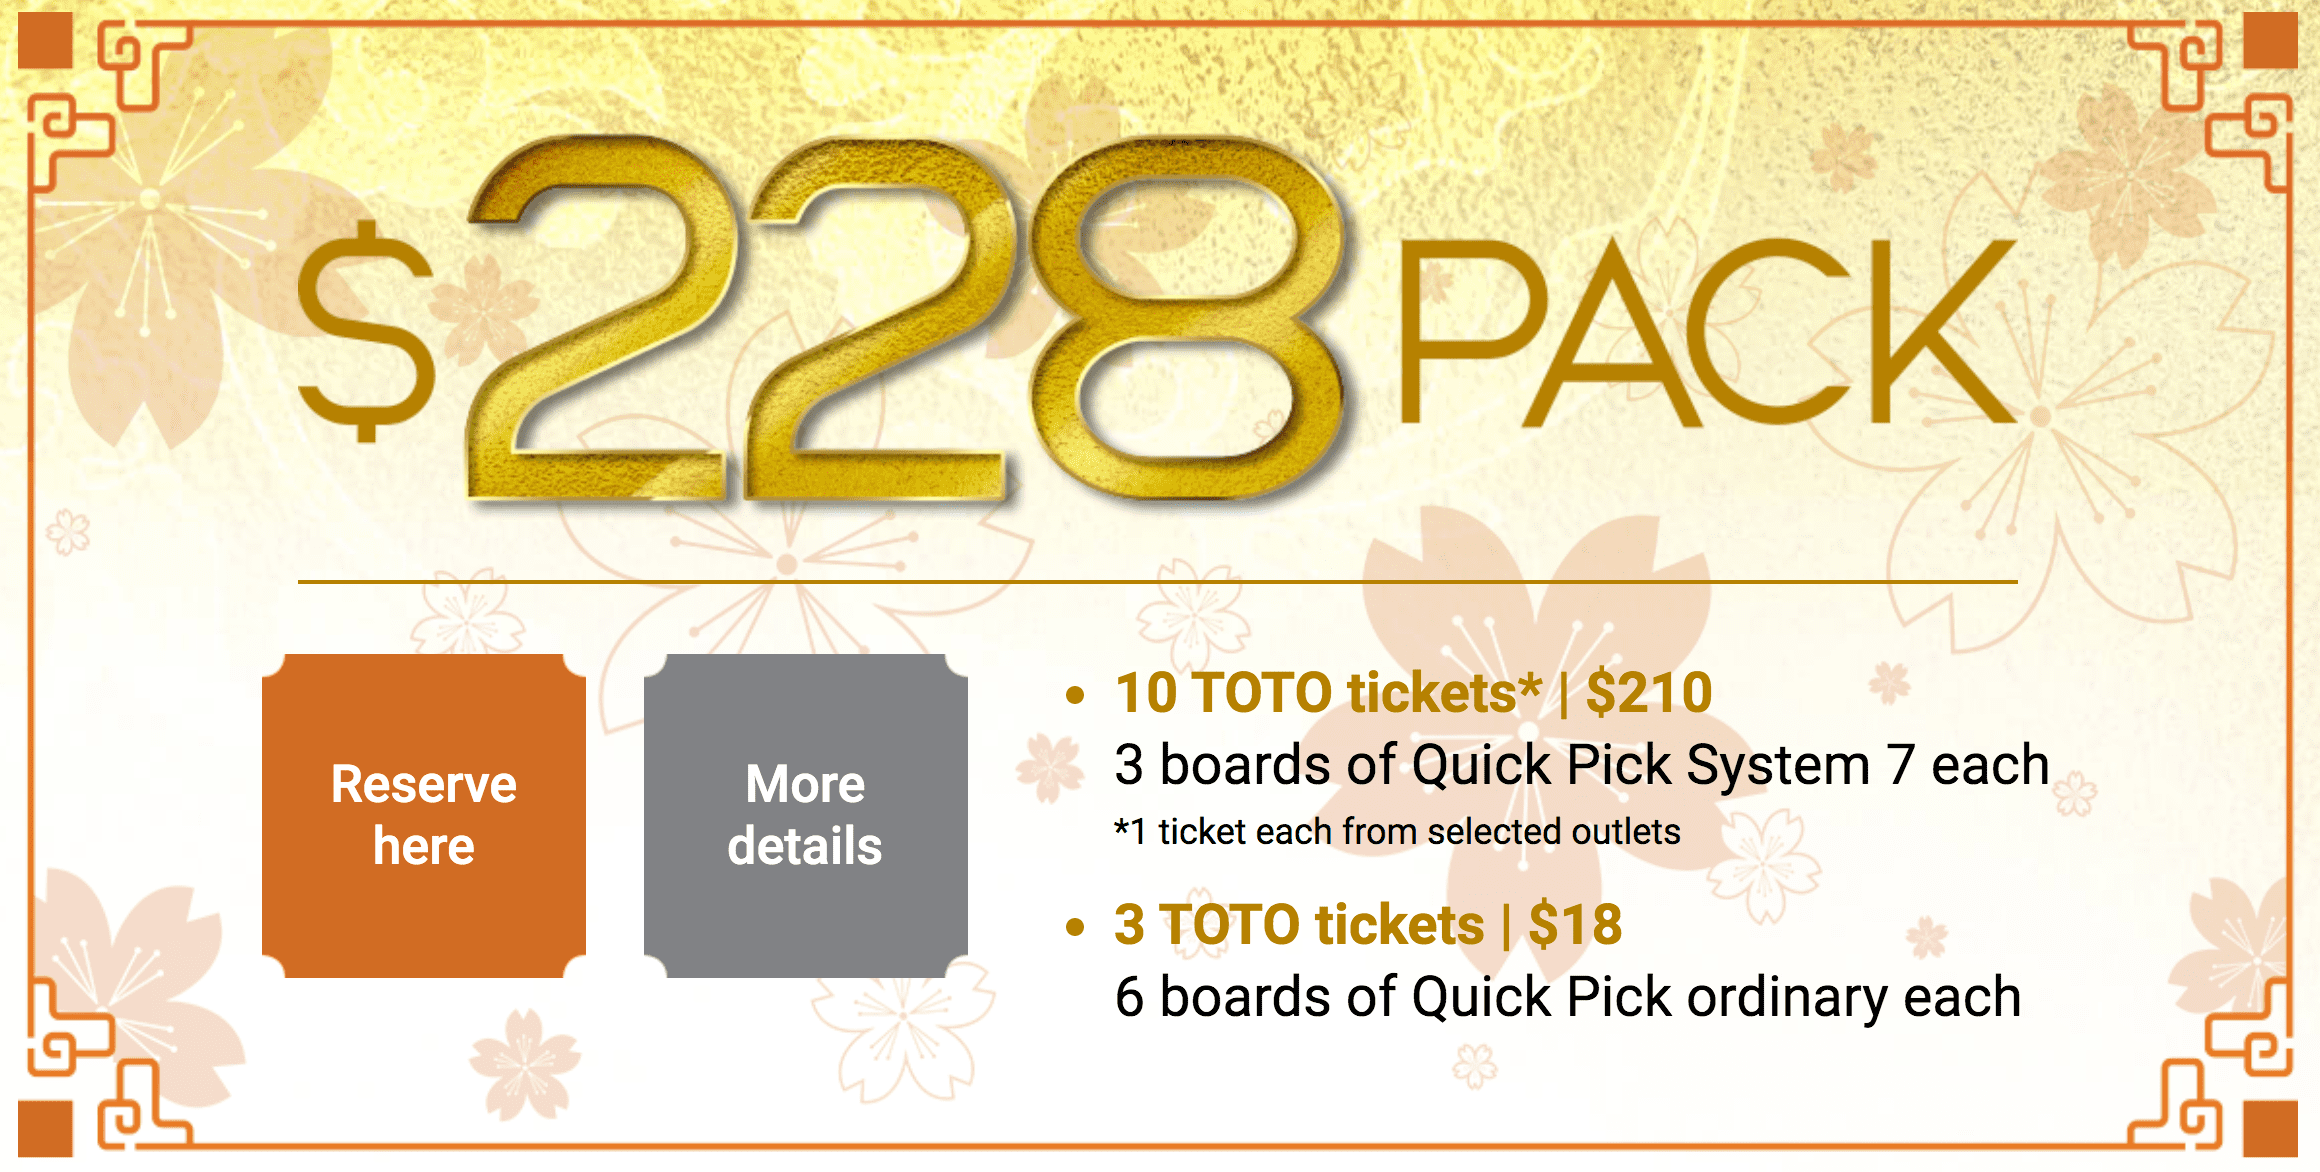 Hong Bao (Ang Bao) Draw 2020, $228 package